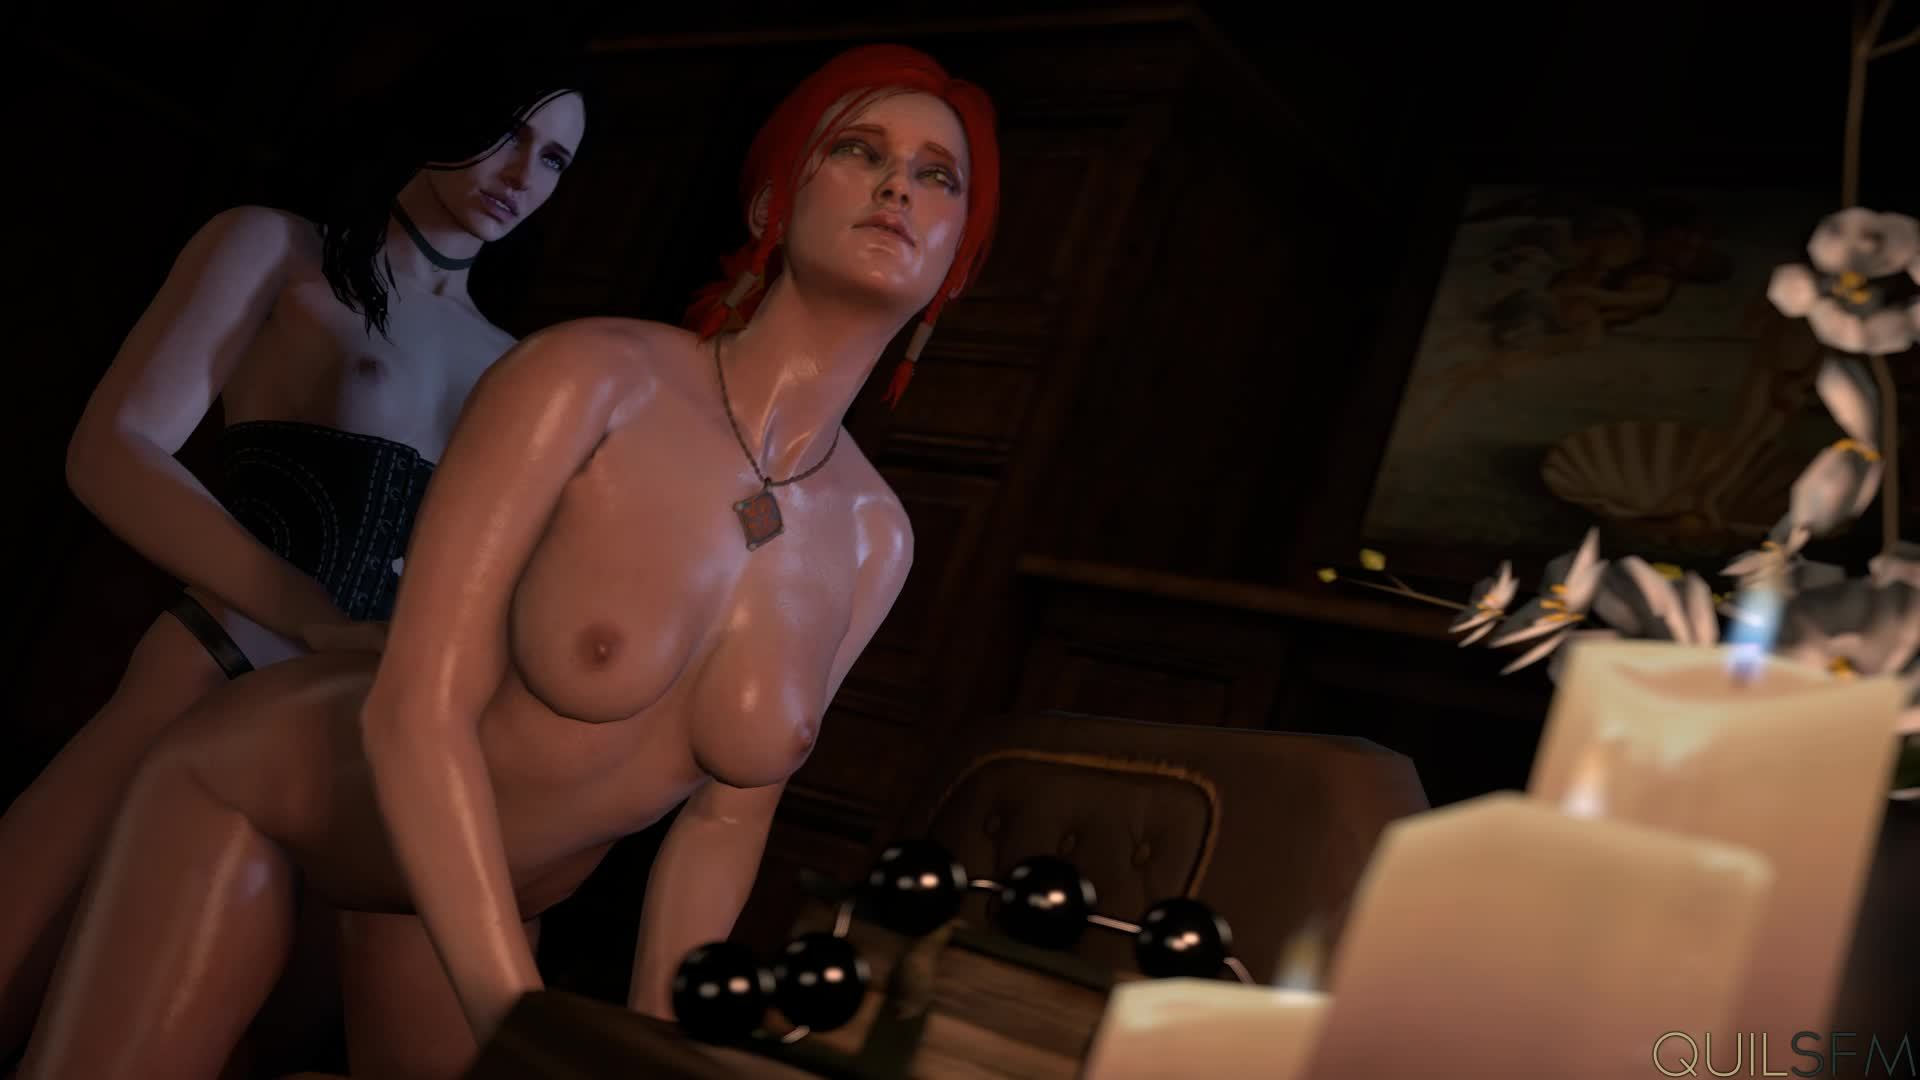 The witcher hentai gif xxx videos